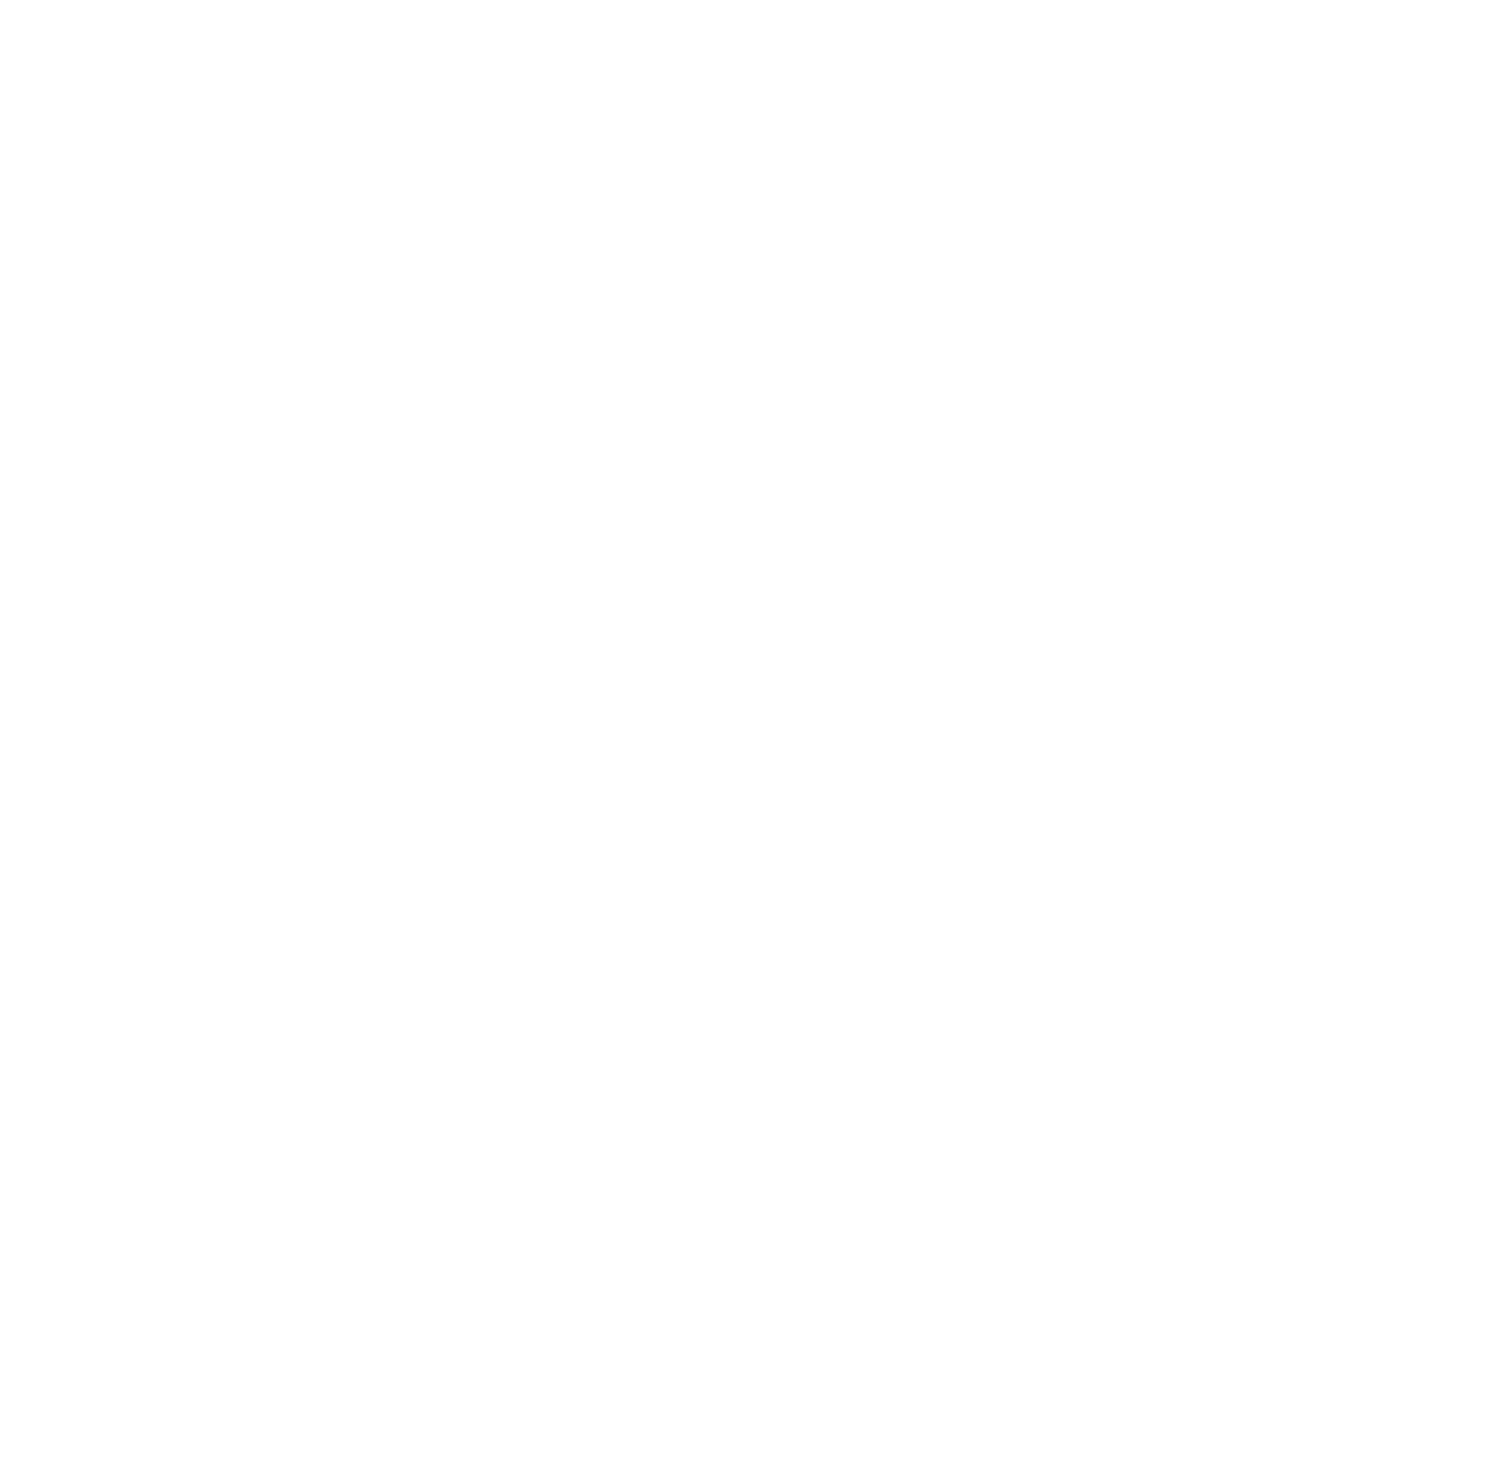 membership_icons-10.png